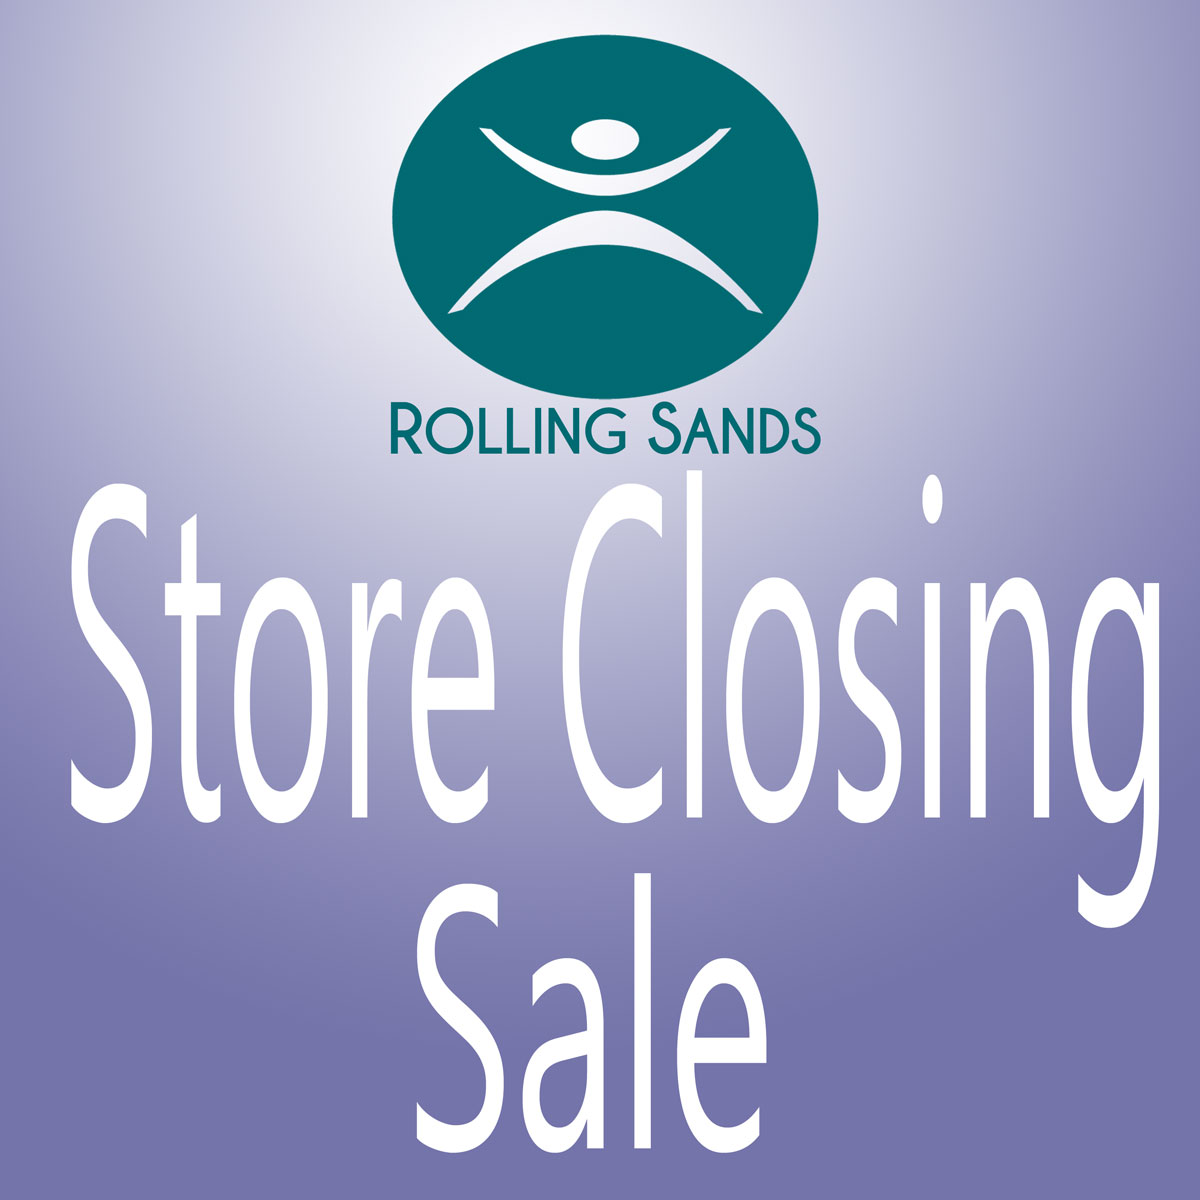 Rolling Sands Store Closing